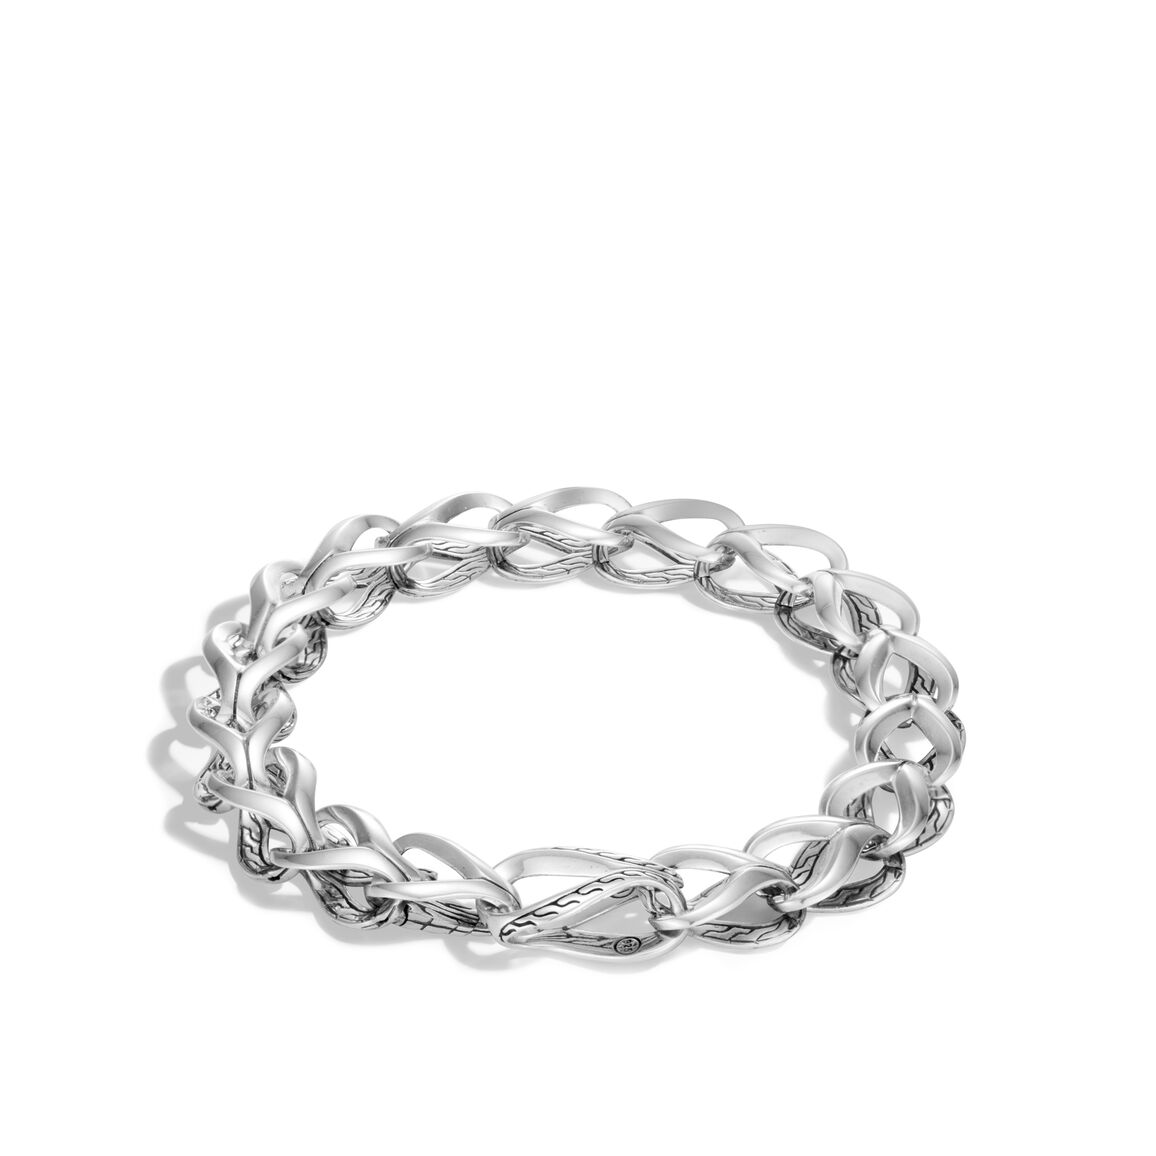 Asli Classic Chain Link 9.5MM Infinity Bracelet in Silver